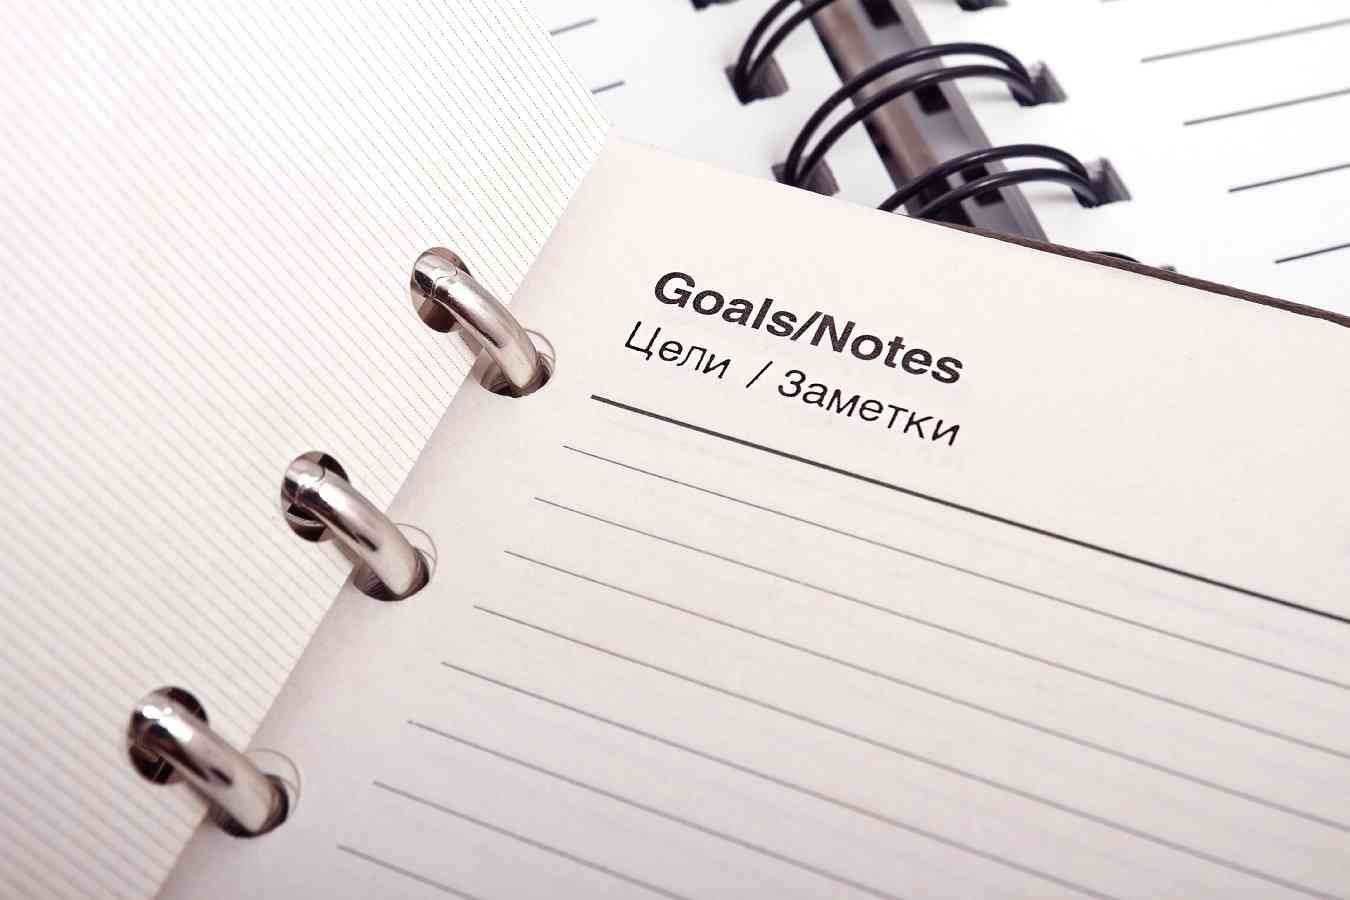 project plans and goals